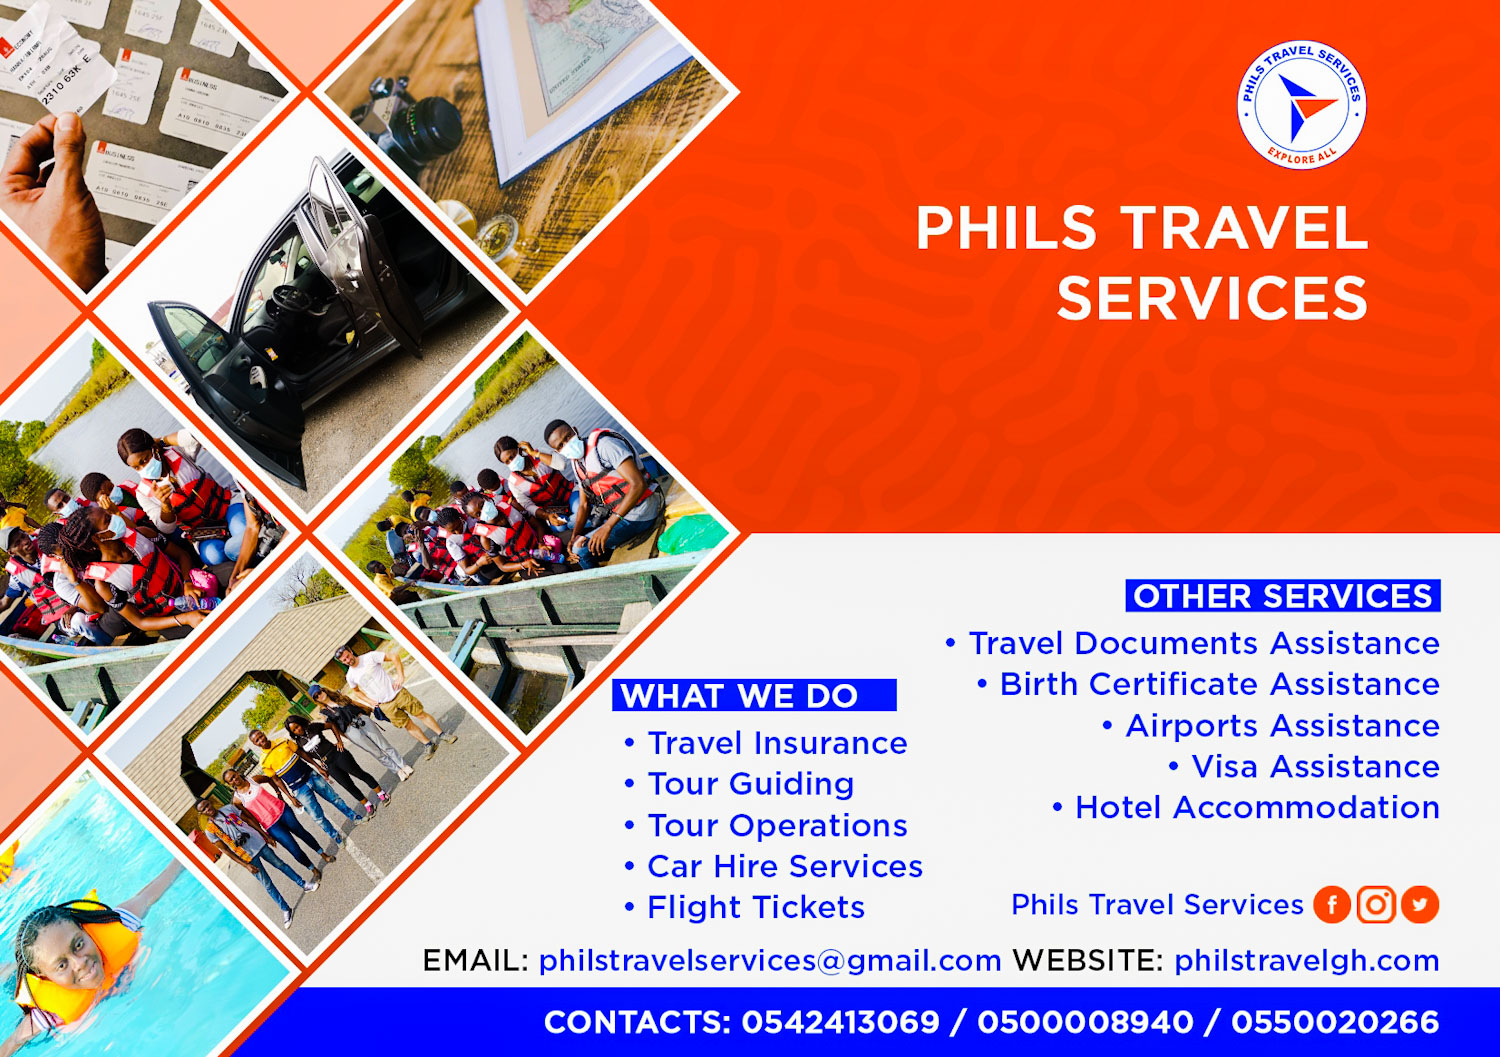 Travel by flight has been made Easier by Phils Travel